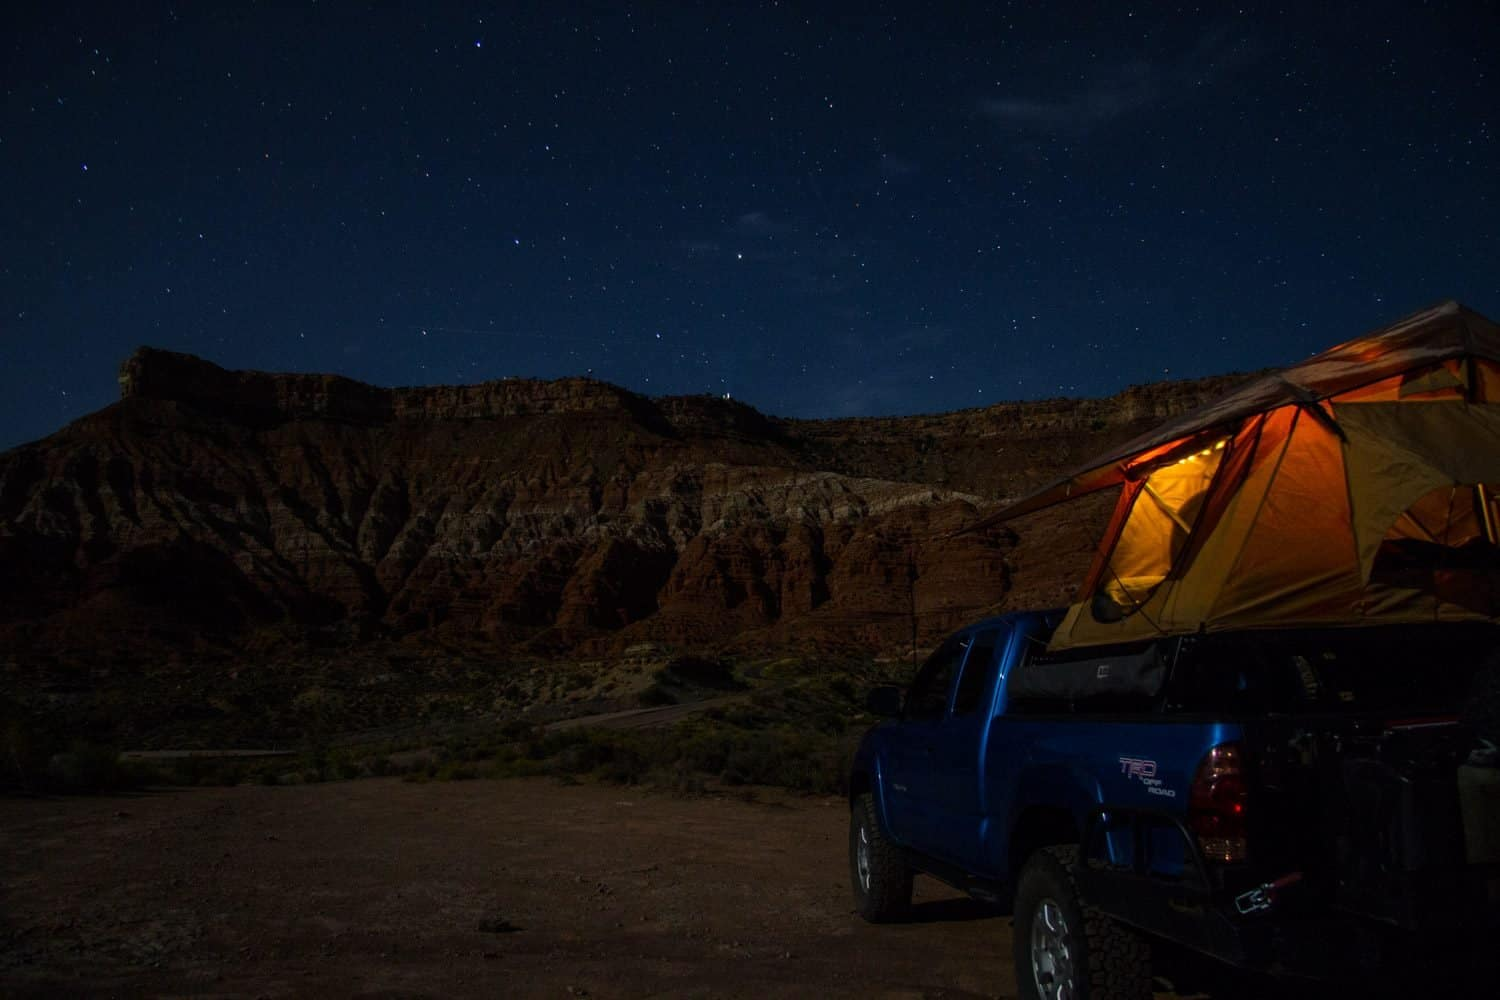 Zion National Park - Camping